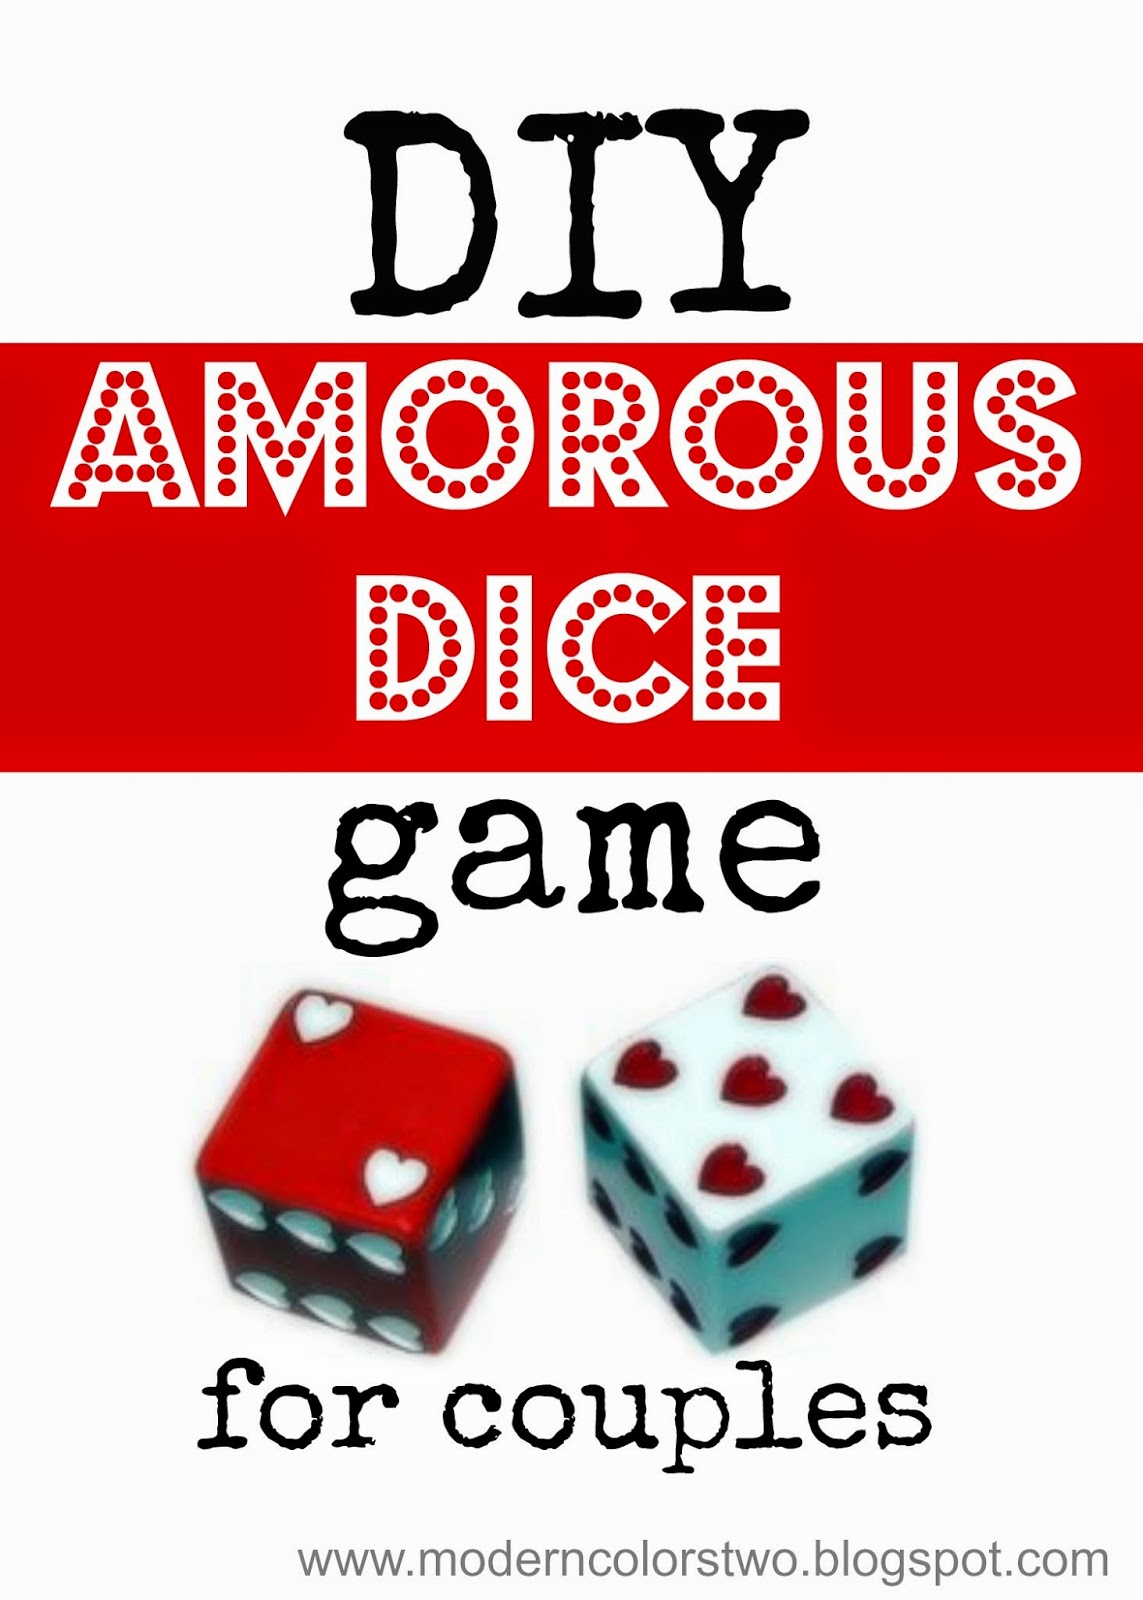 The dice game for couples